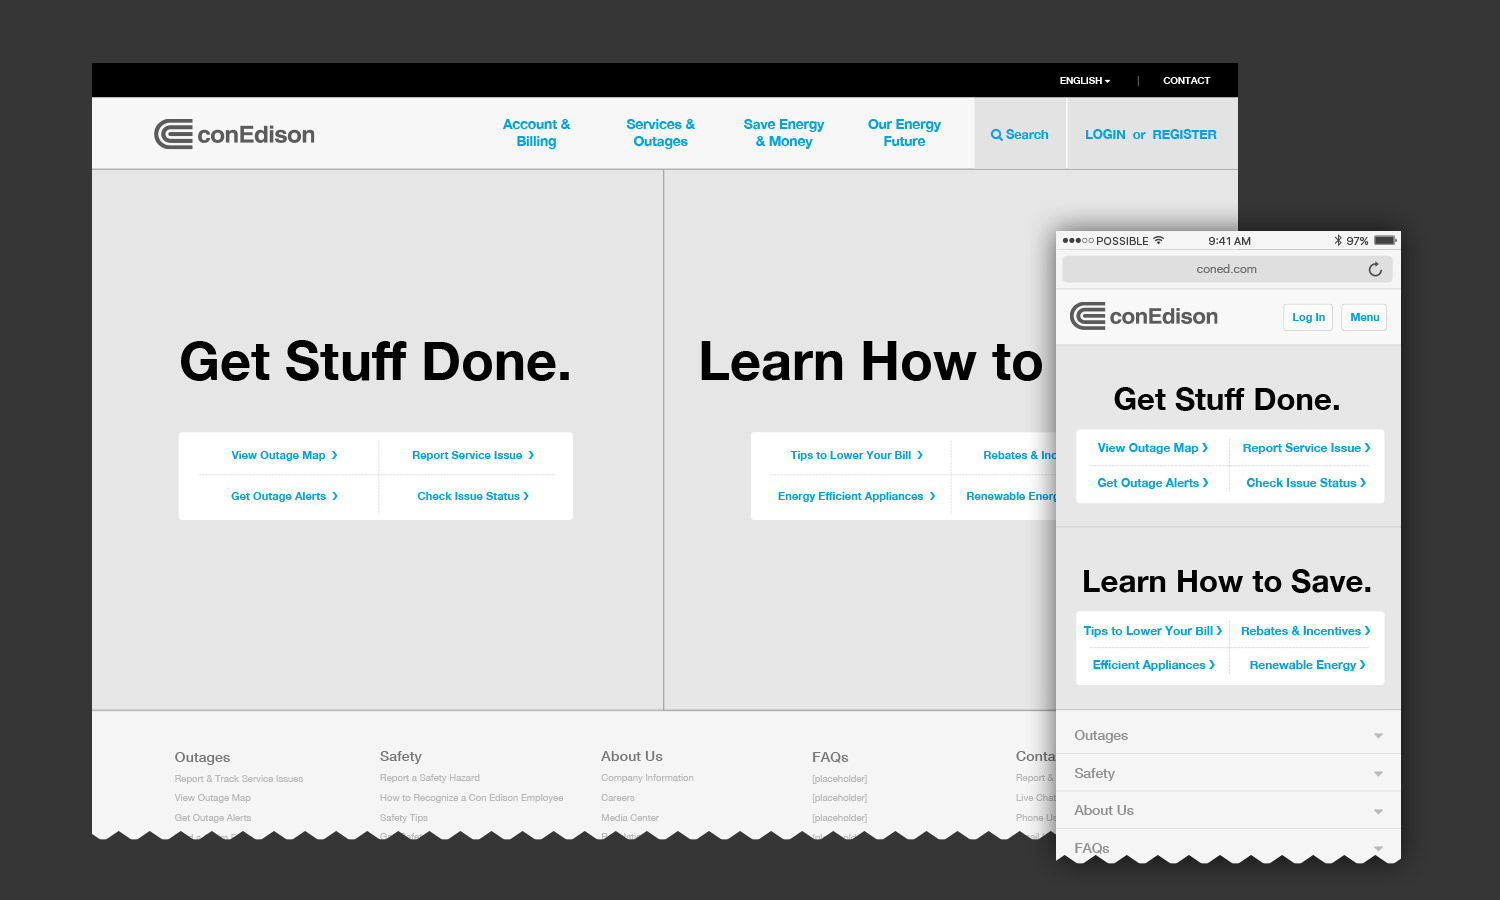 ConEd.com Wireframe Homepage Template